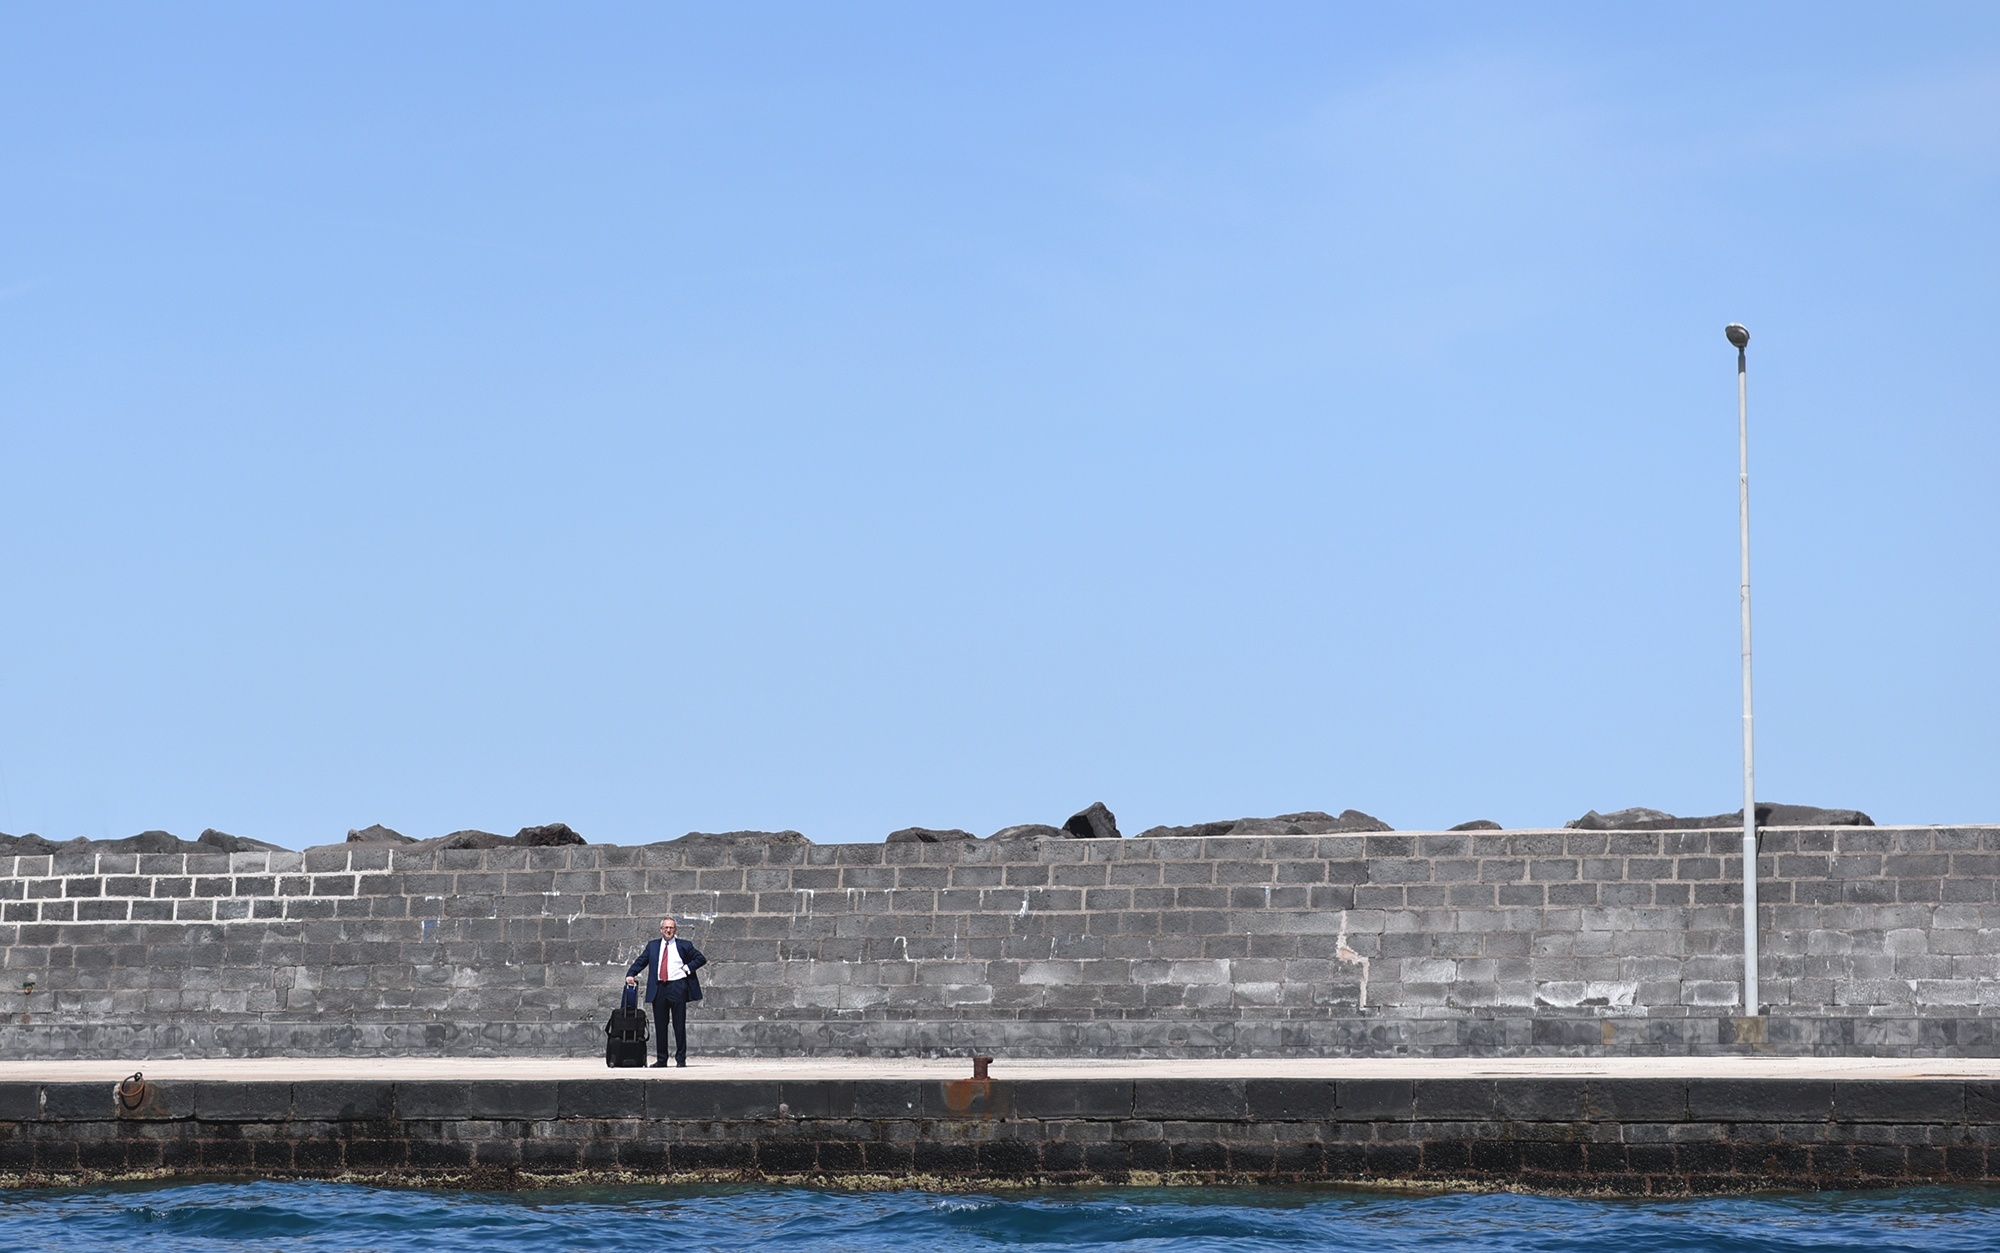 A man waits patiently for a ferry in Capri, Italy. Photographed in April 2016.